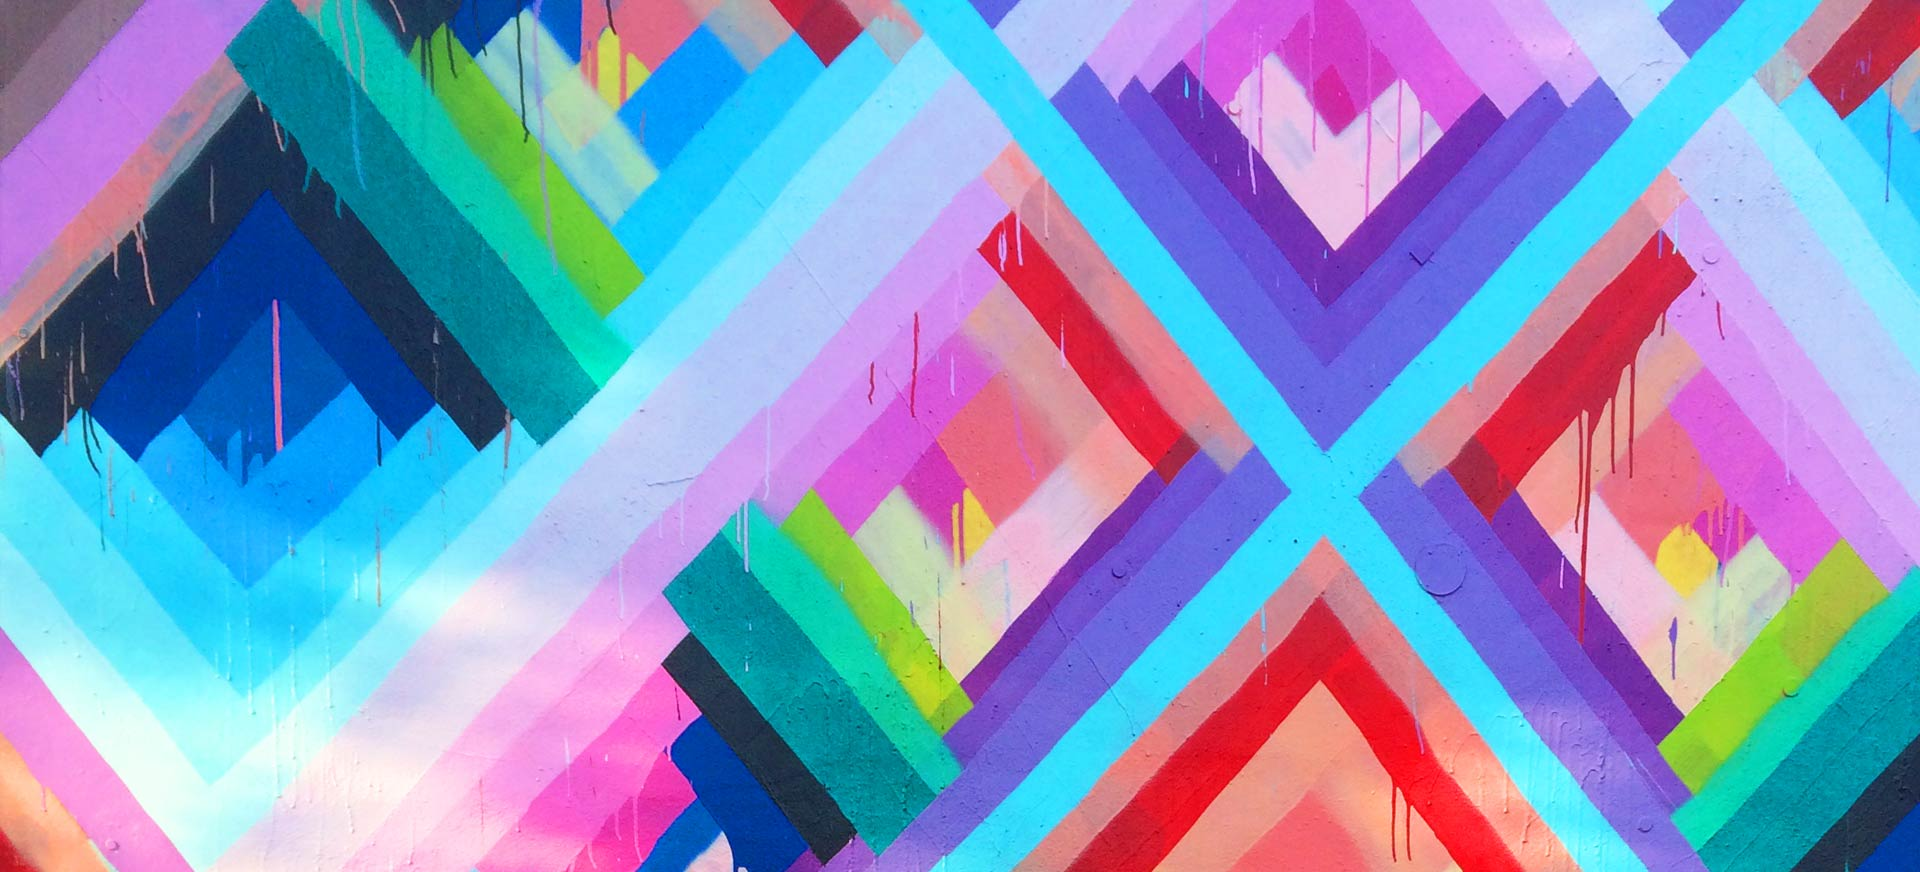 An extreme close-up of a mural from Miami's Wynwood district that displays multi-colored diamond shapes